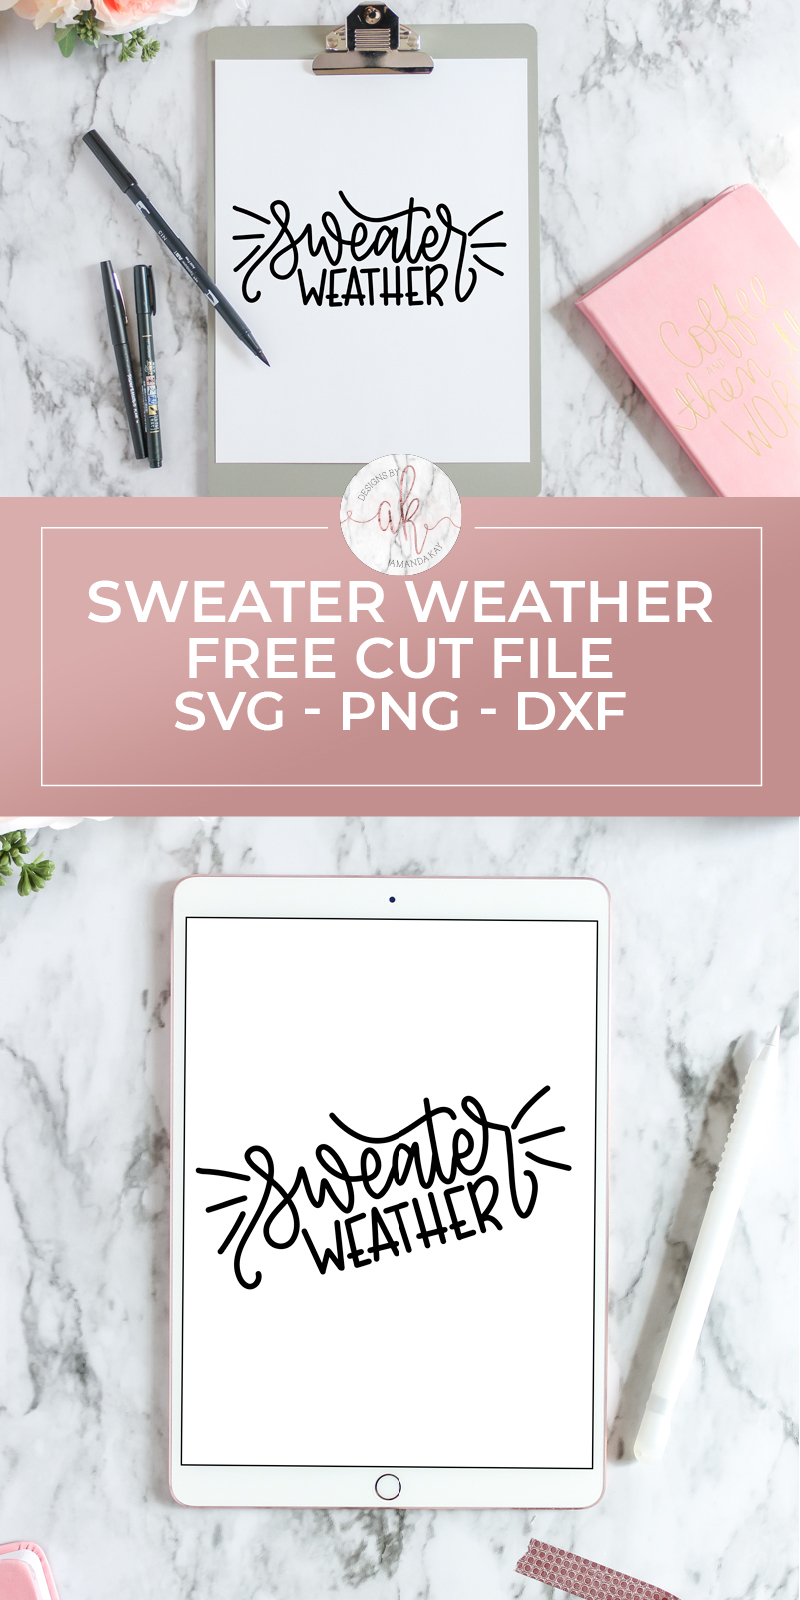 Sweater Weather is finally here! Grab this hand lettered sweater weather free cut file to use on coffee mugs, shirts, totes and anything else you want. It's completely FREE!  #freecutfile #freesvgcutfile #sweaterweather #sweaterweathercutfile #handletteredcutfile #byamandakay